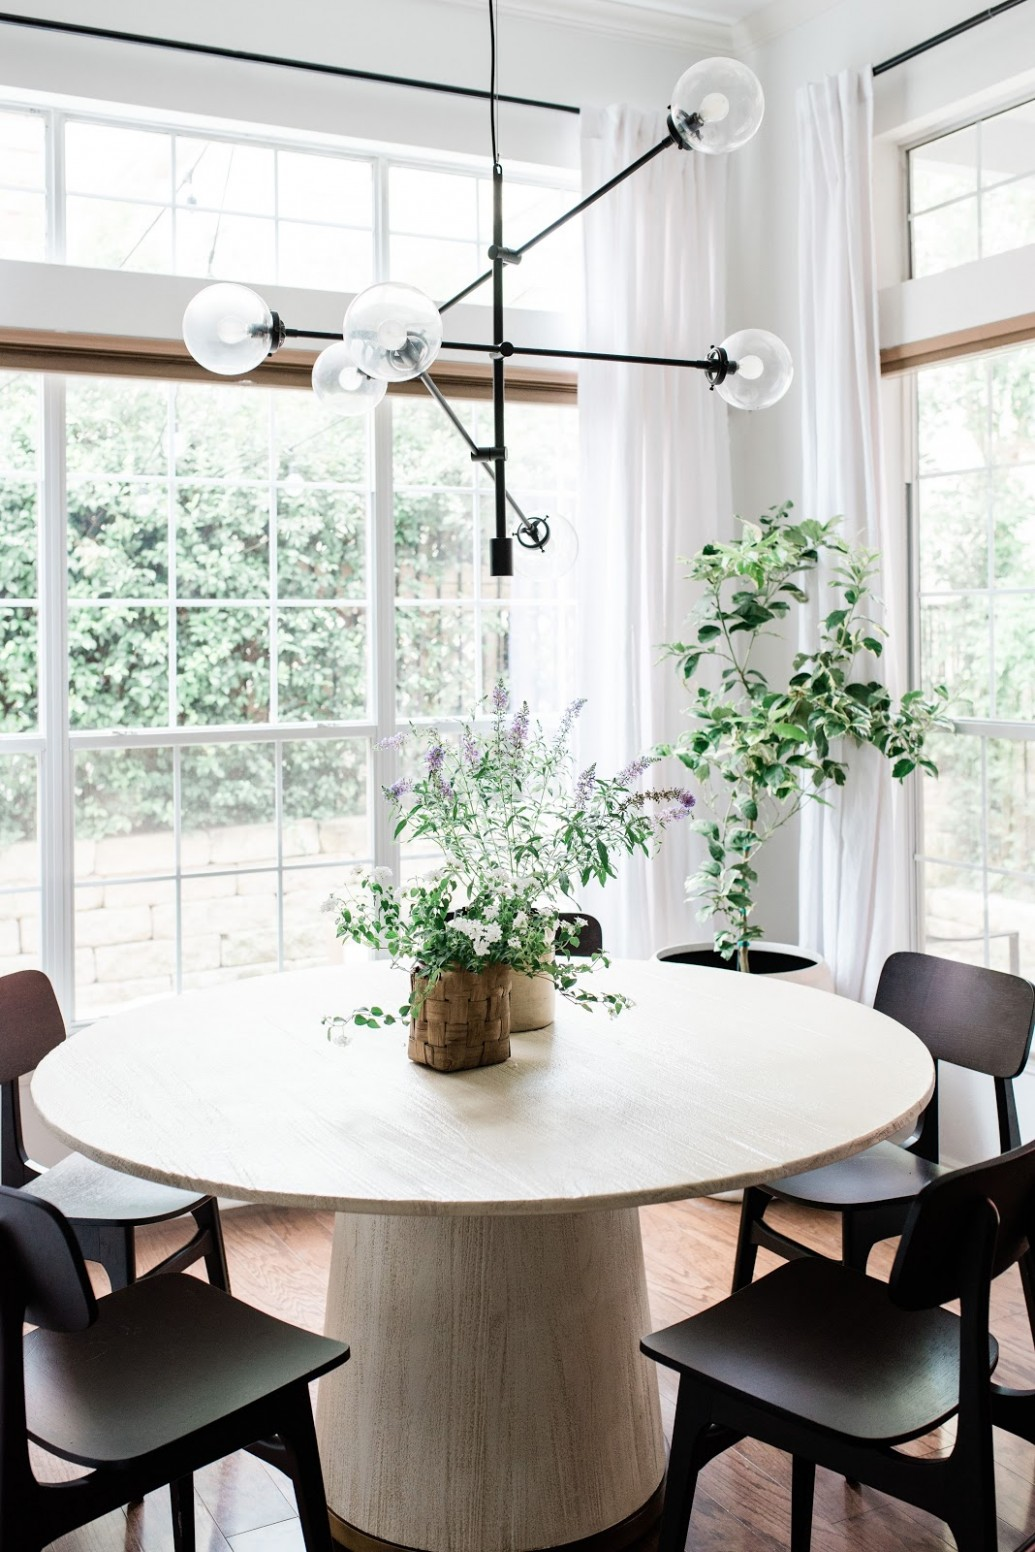 11 Small Dining Room Ideas to Make the Most of Your Space - Dining Room Table Ideas For Small Spaces